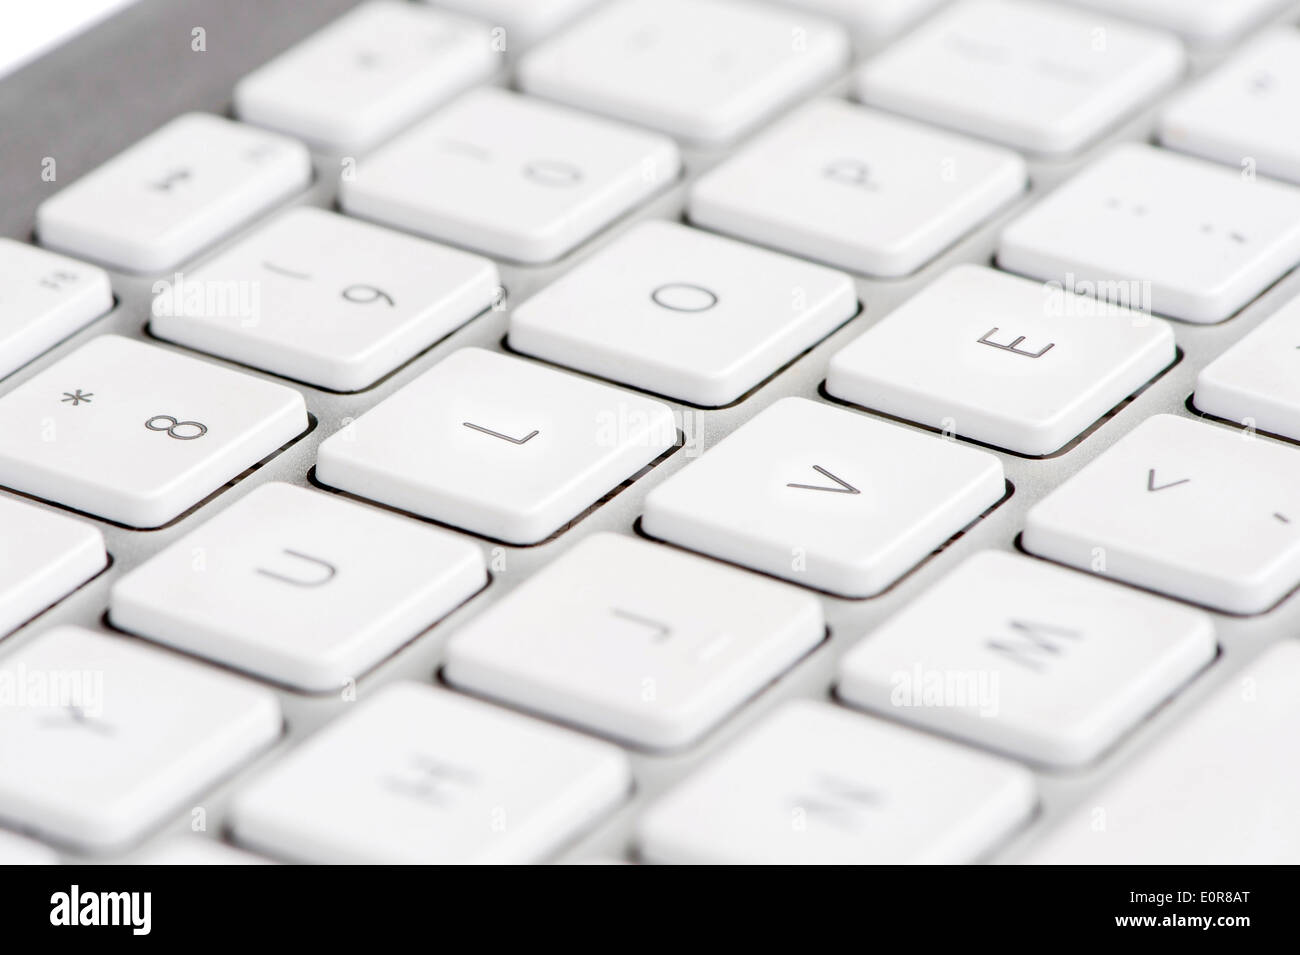 Apple mac white Keyboard spelling out the word LOVE - Stock Image